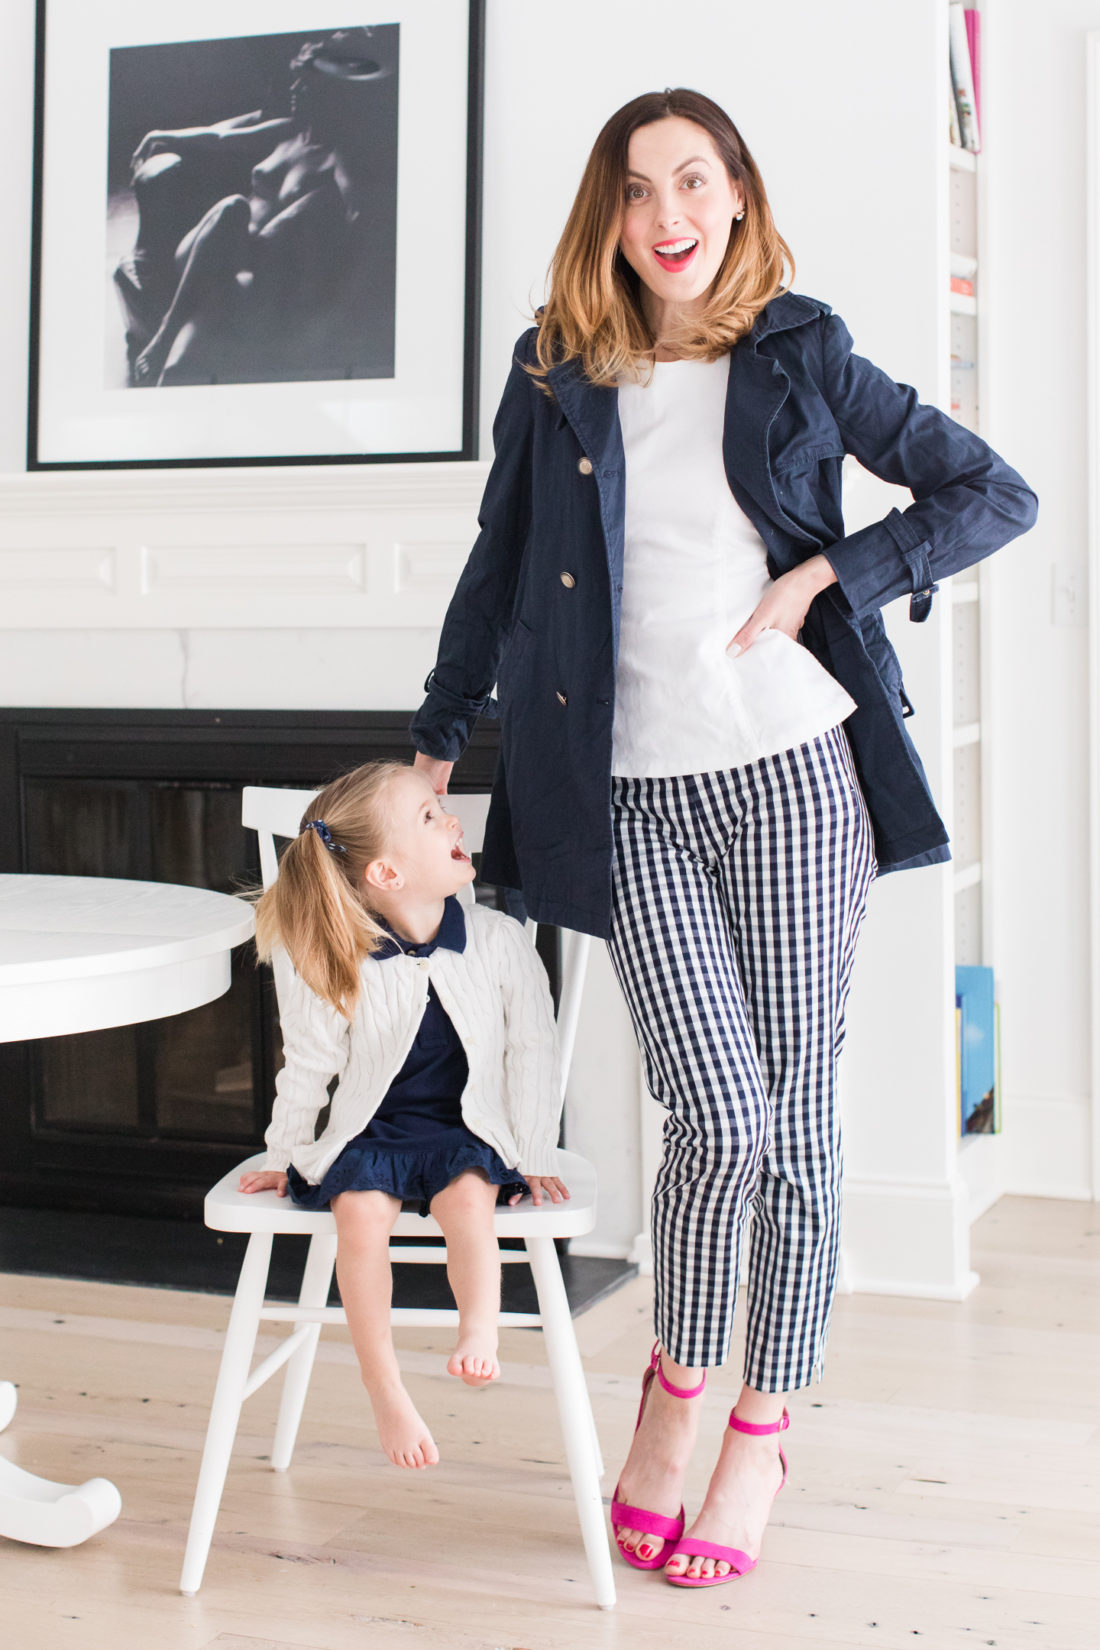 Eva Amurri Martino and Marlowe Martino wear their navy blue and white secondhand outfits from thredUP in the kitchen of their connecticut home